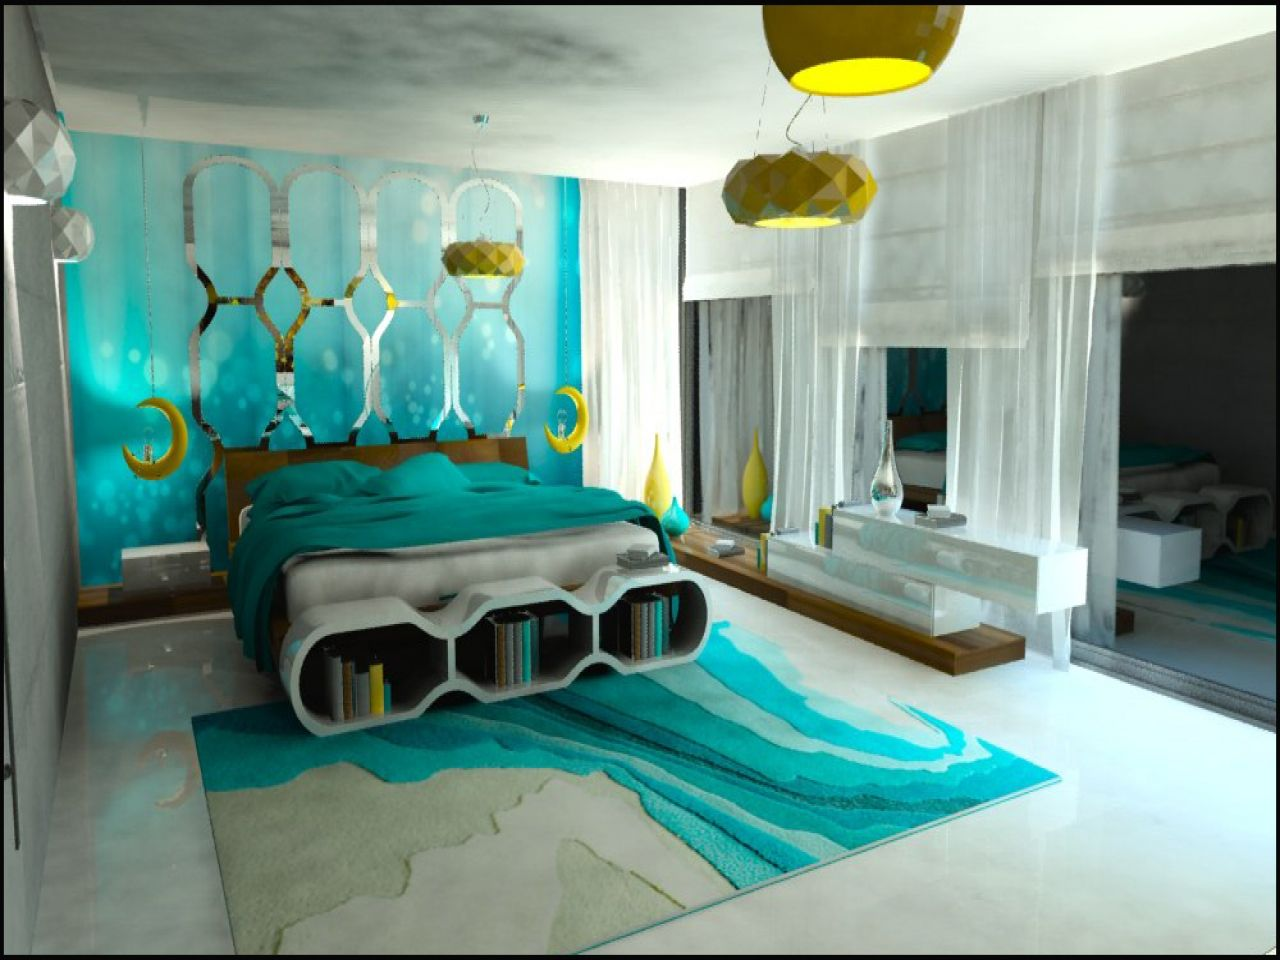 Turquoise Home Decor Accessories turquoise room decorations, colors of nature & aqua exoticness